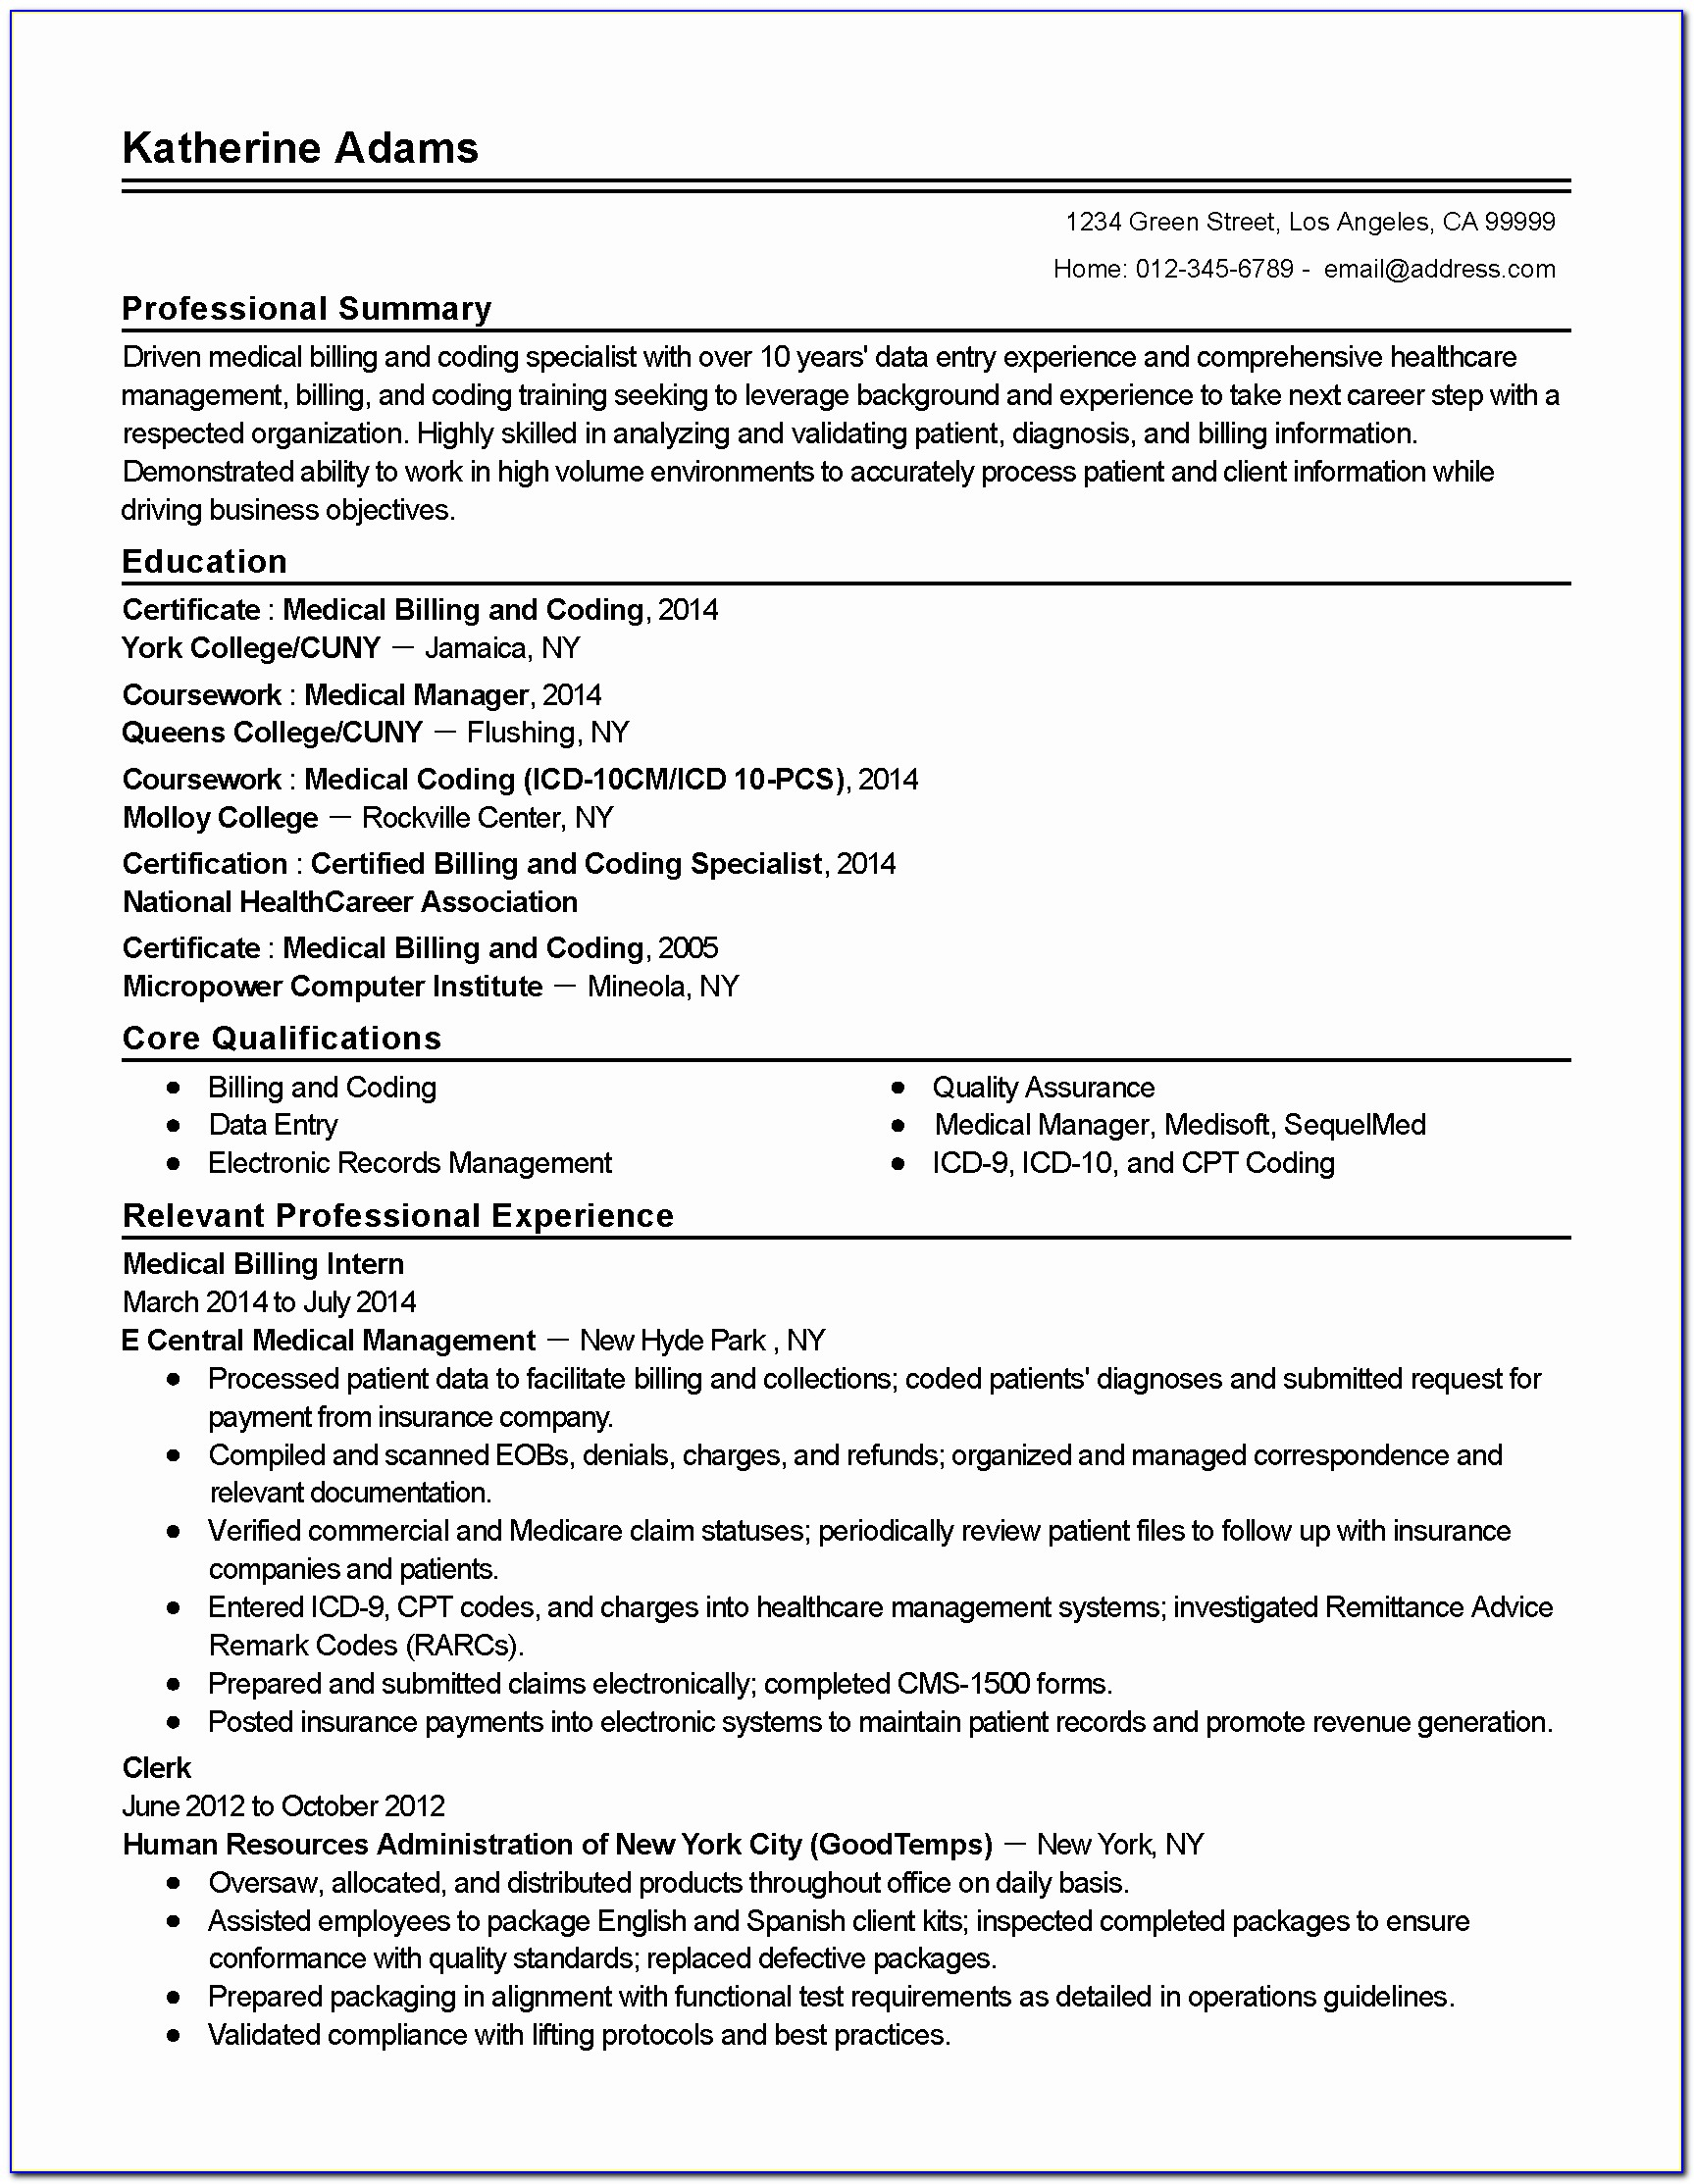 Resume For Medical Billing Job